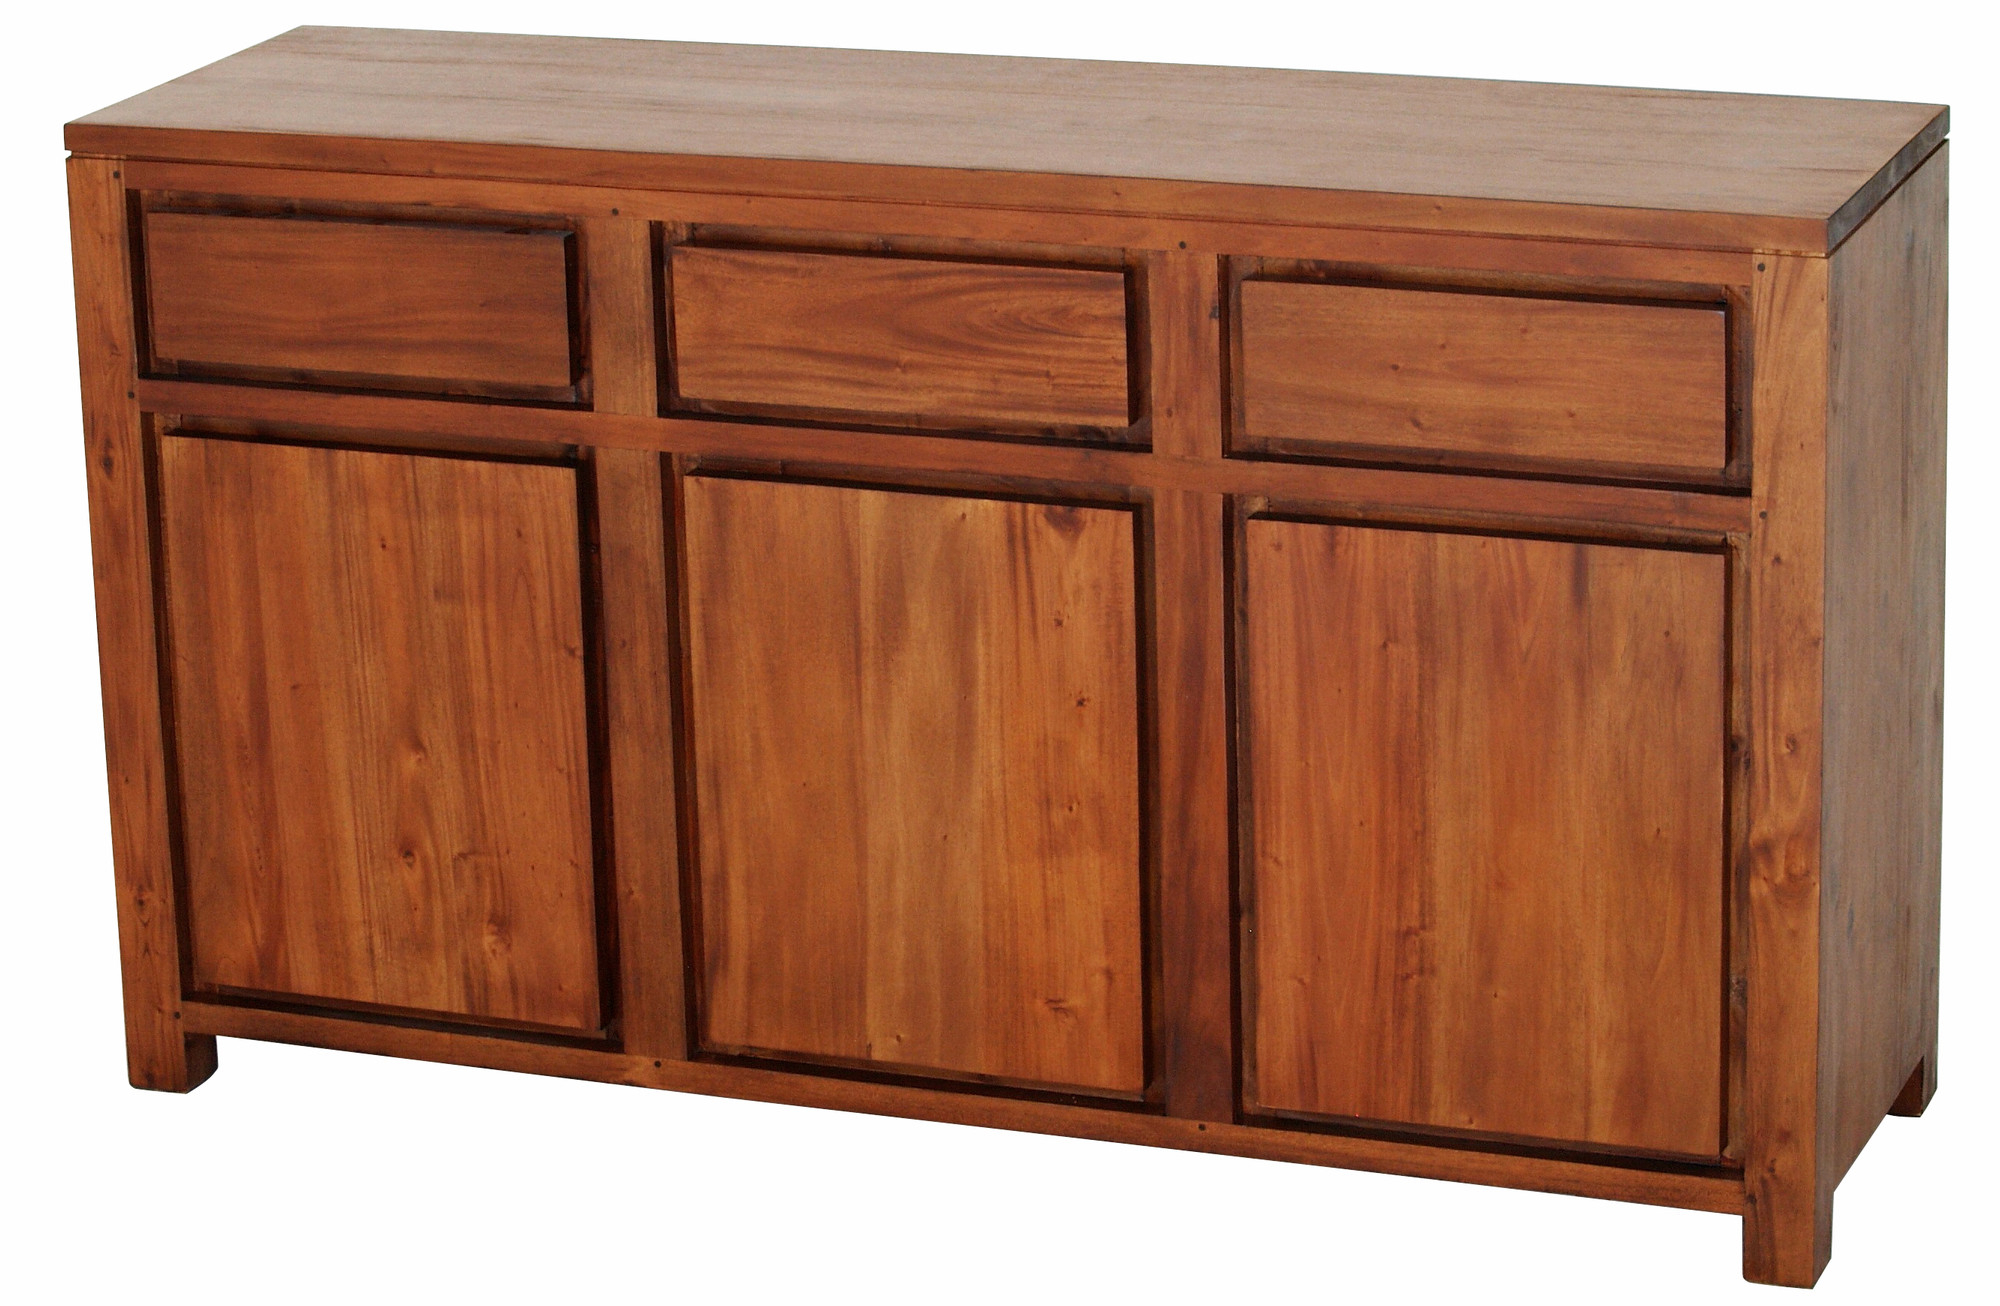 Nicolette Belgium 3 Drawer Buffet Within 3 Drawer Storage Buffets (View 15 of 20)